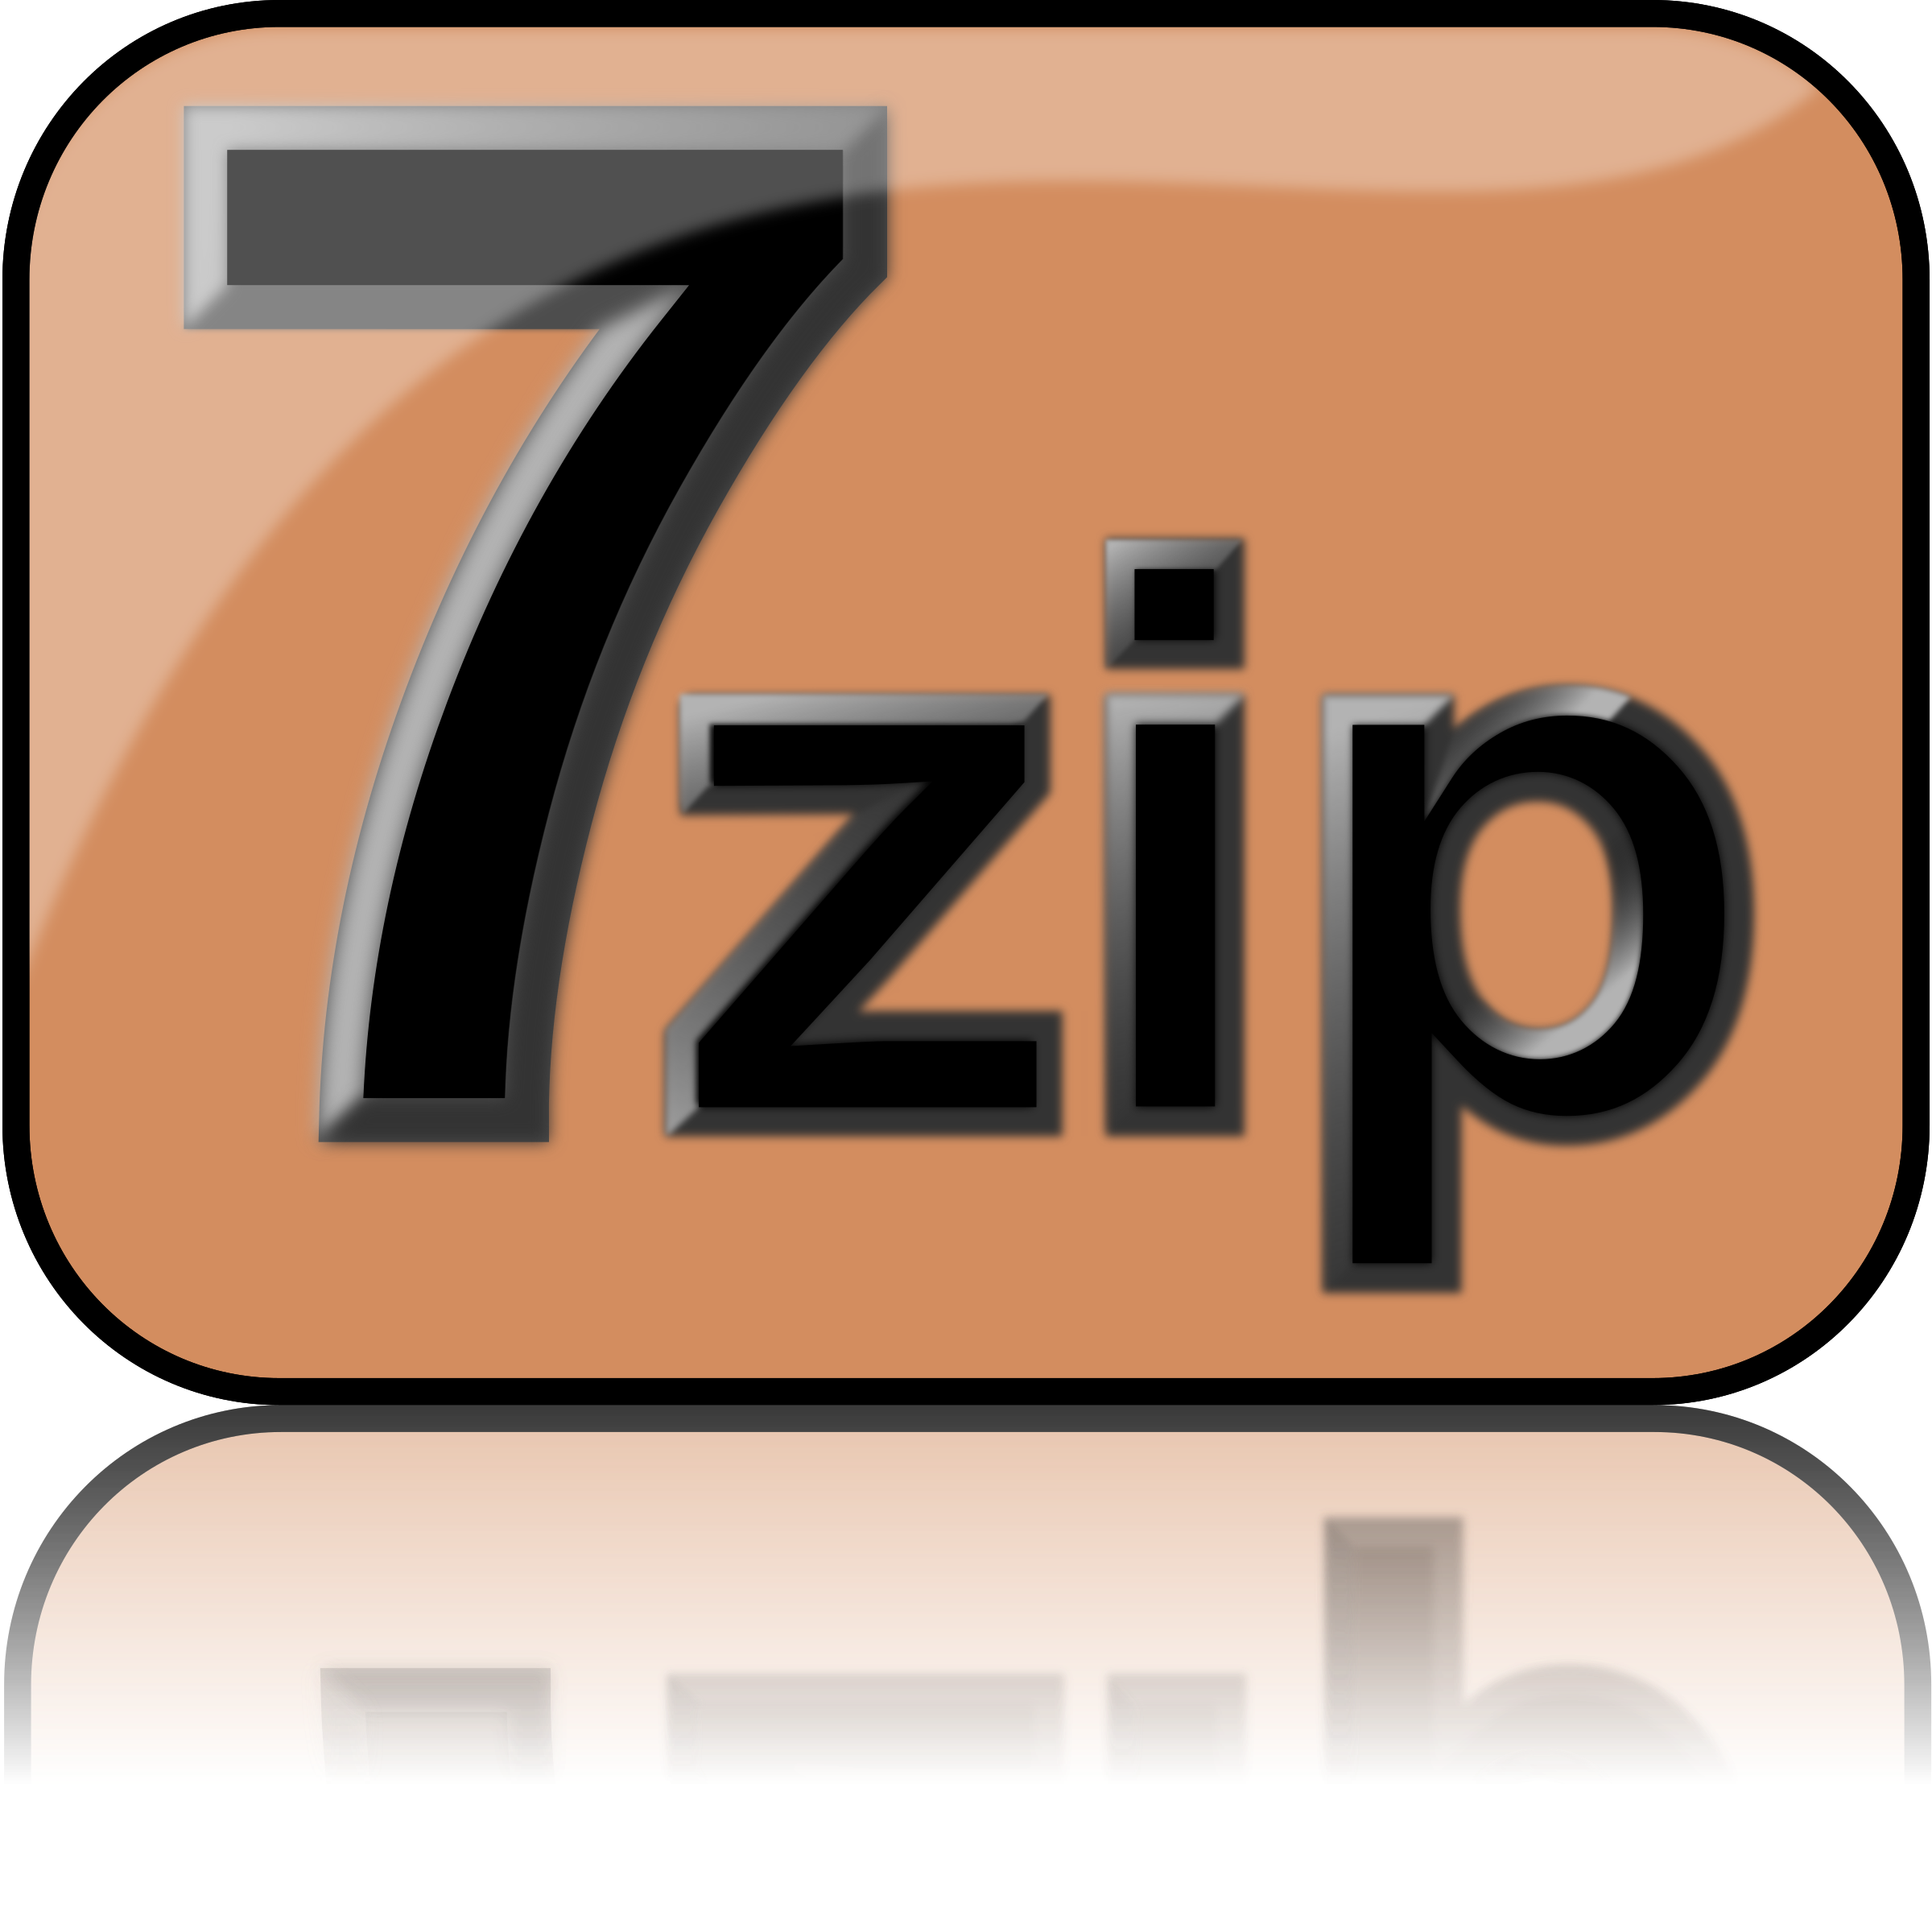 7zip Glossy Extrude Brown by kg